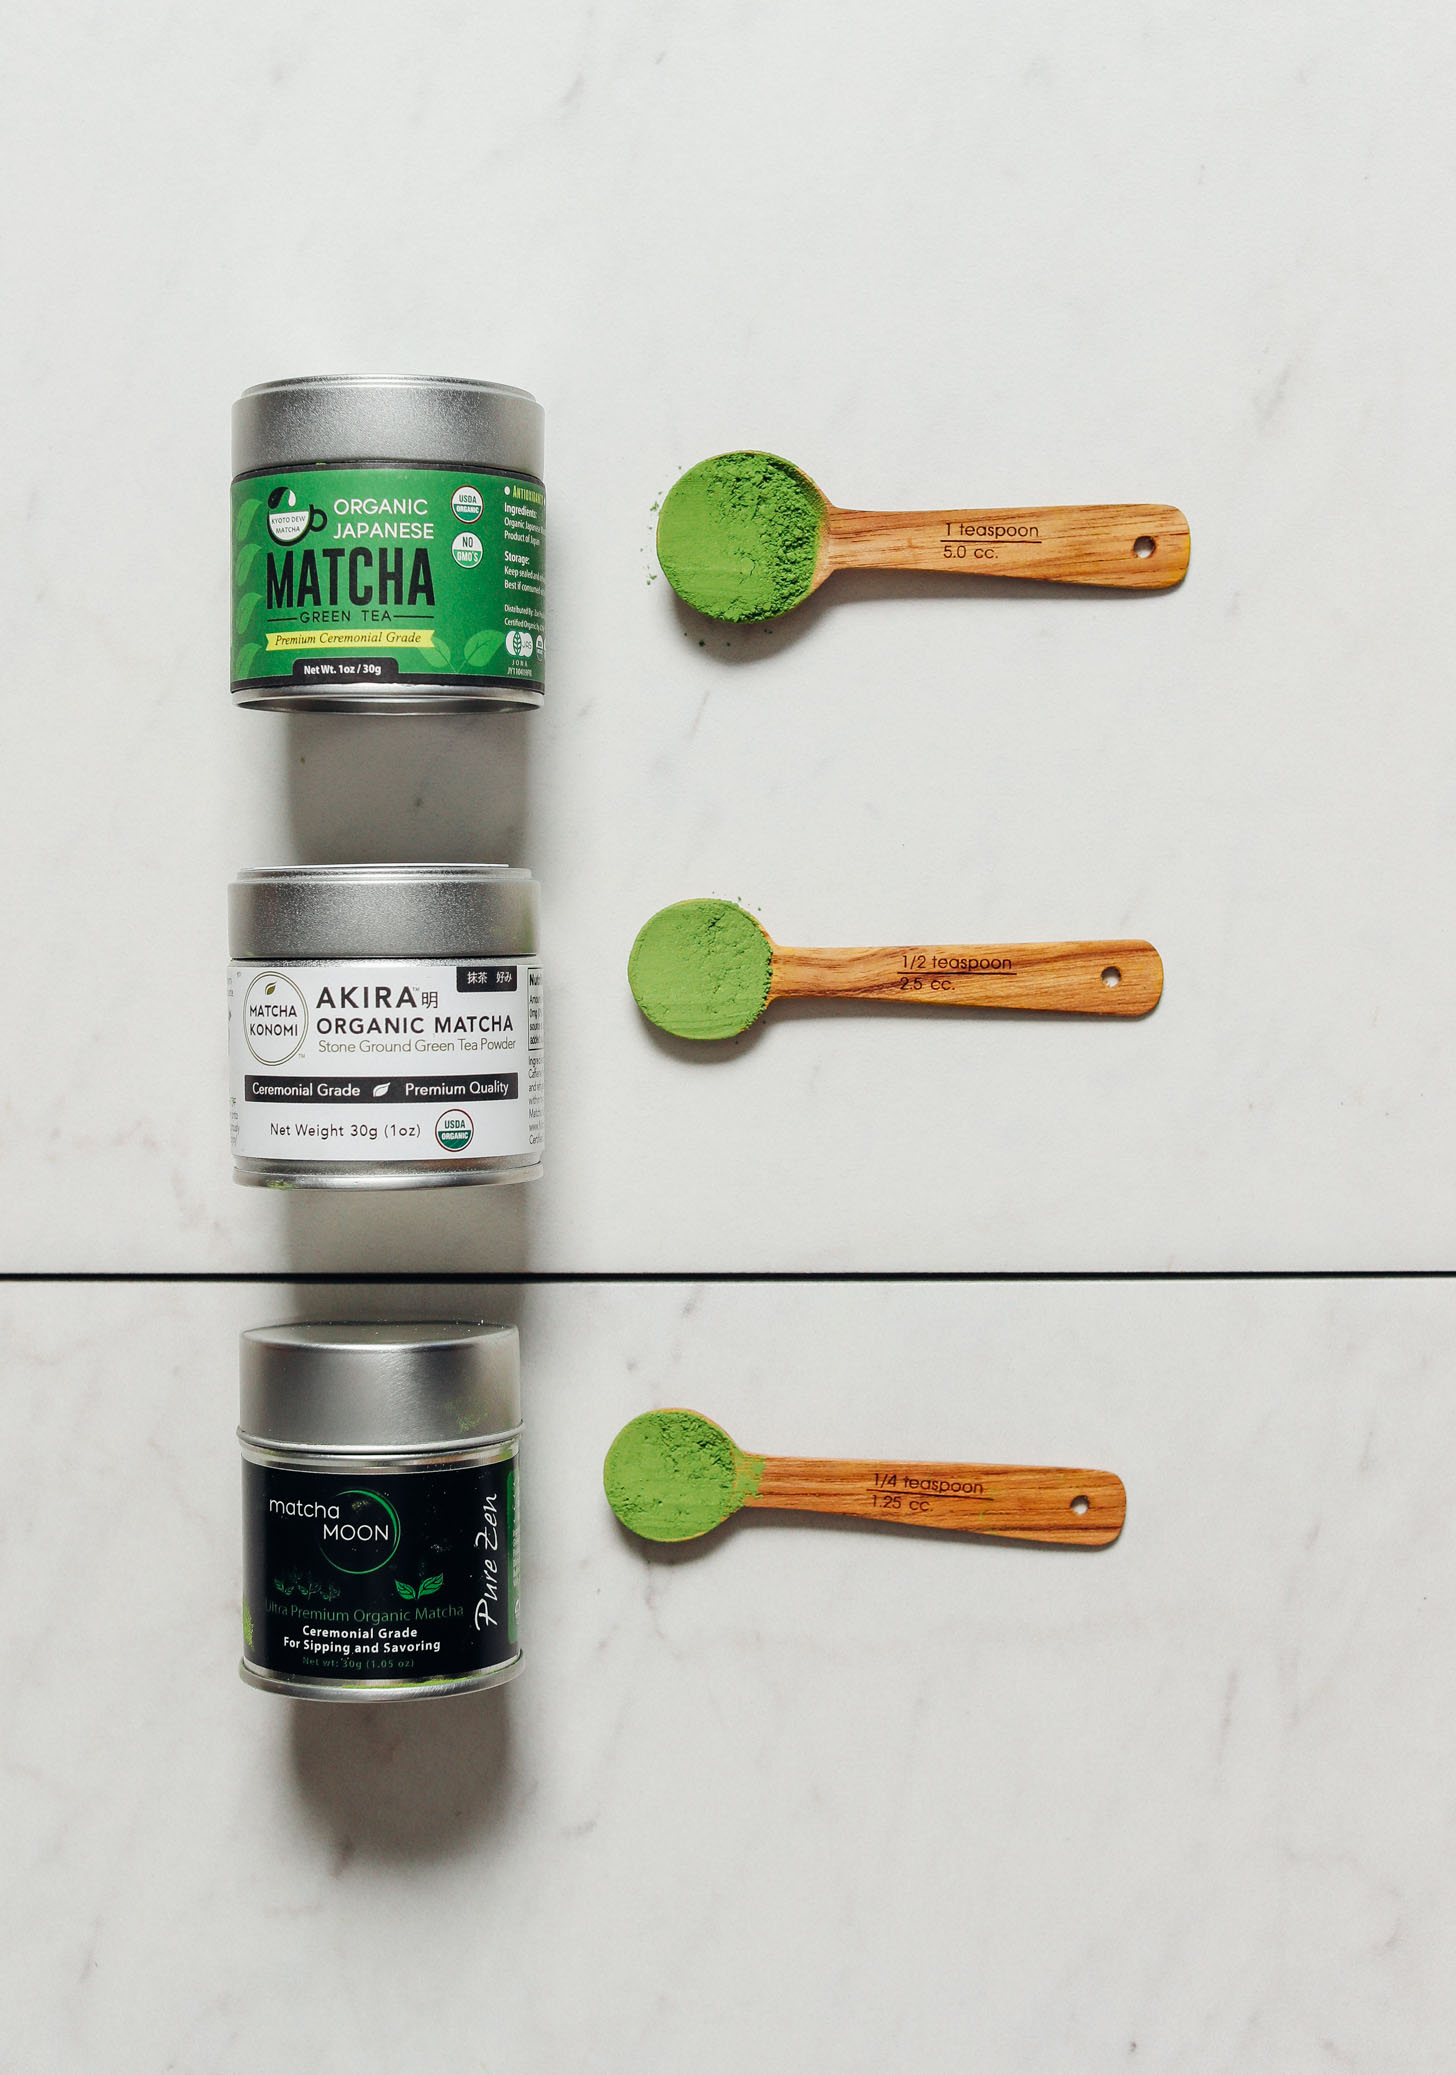 Spoonfuls of our top three favorite matcha brands beside their canisters